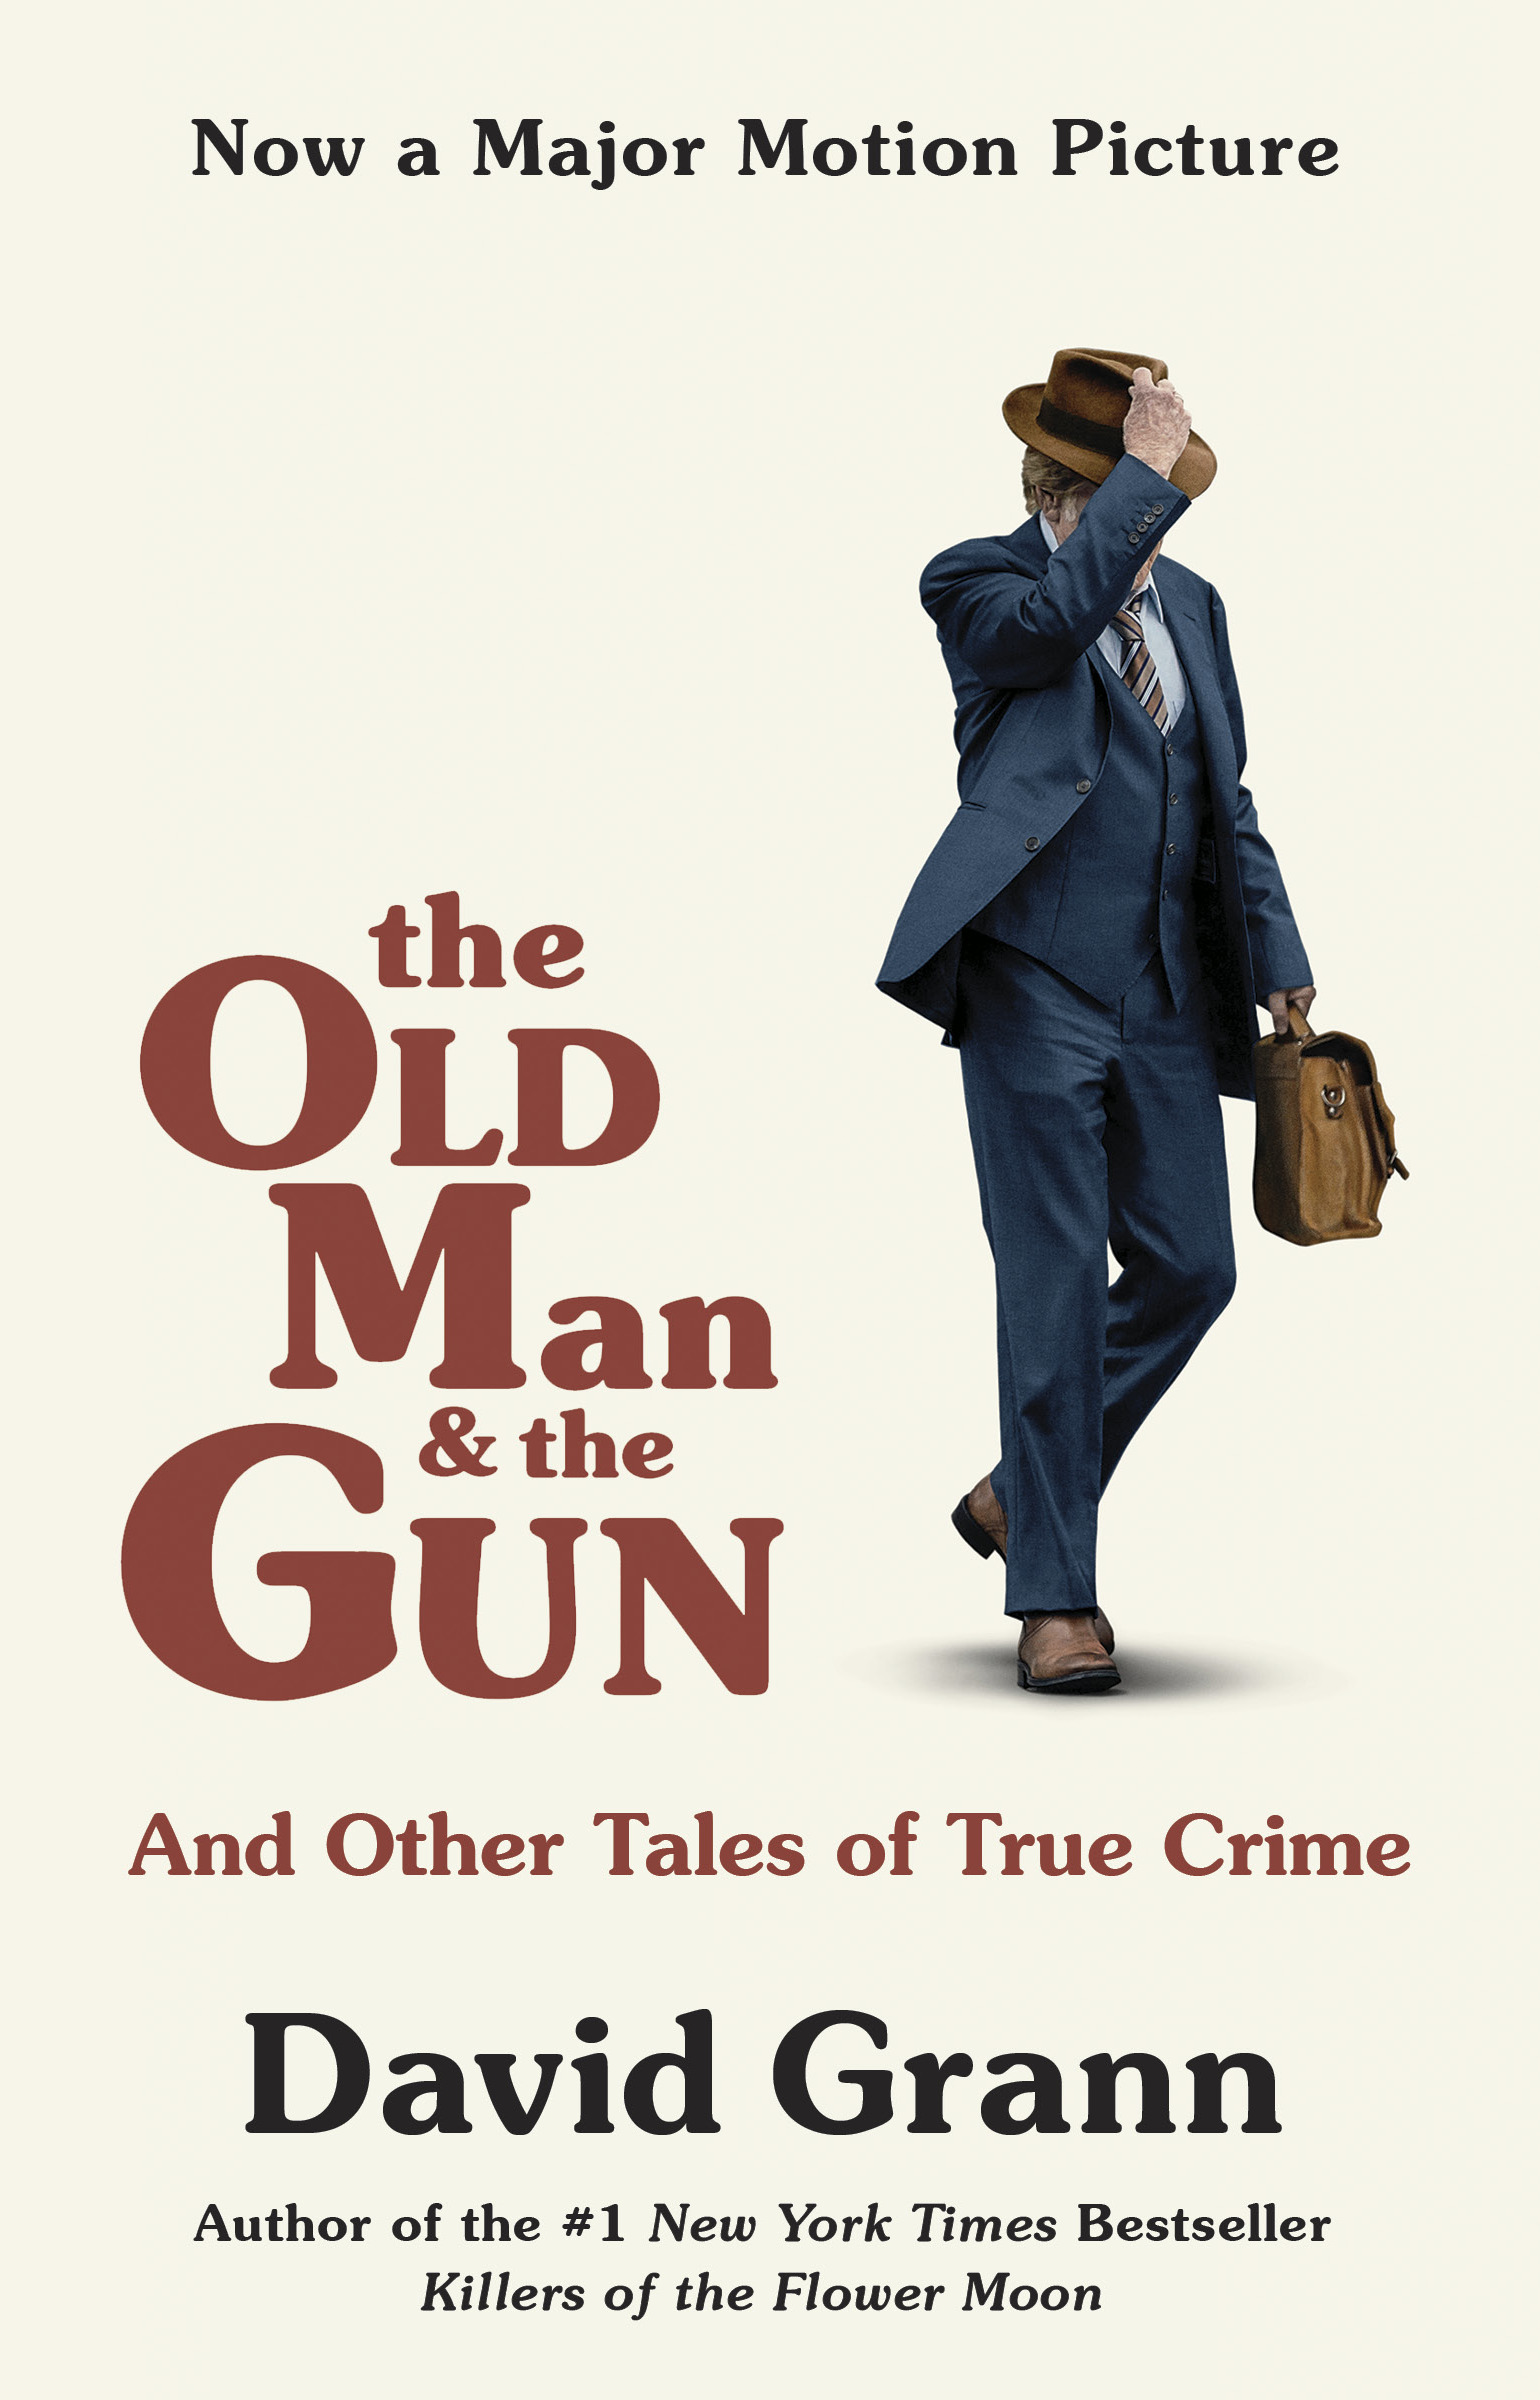 THE OLD MAN AND THE GUN by David Grann